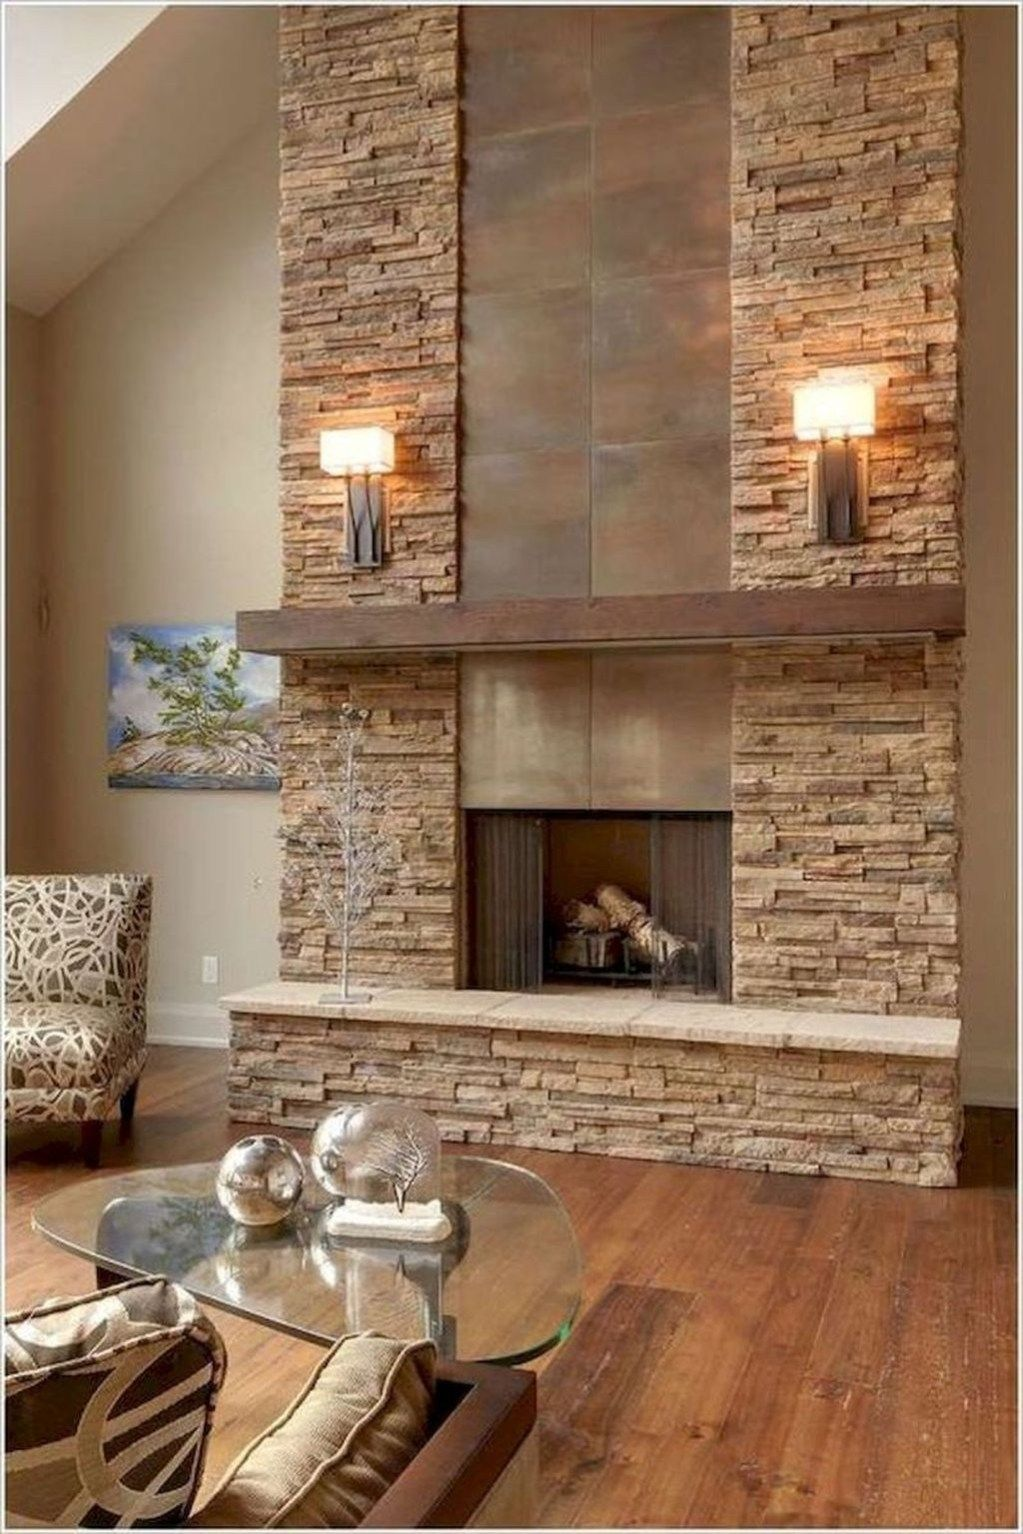 Glamour Farmhouse Home Decor Ideas On A Budget 45 Fireplace Design Stone Wall Living Room Stacked Stone Fireplaces